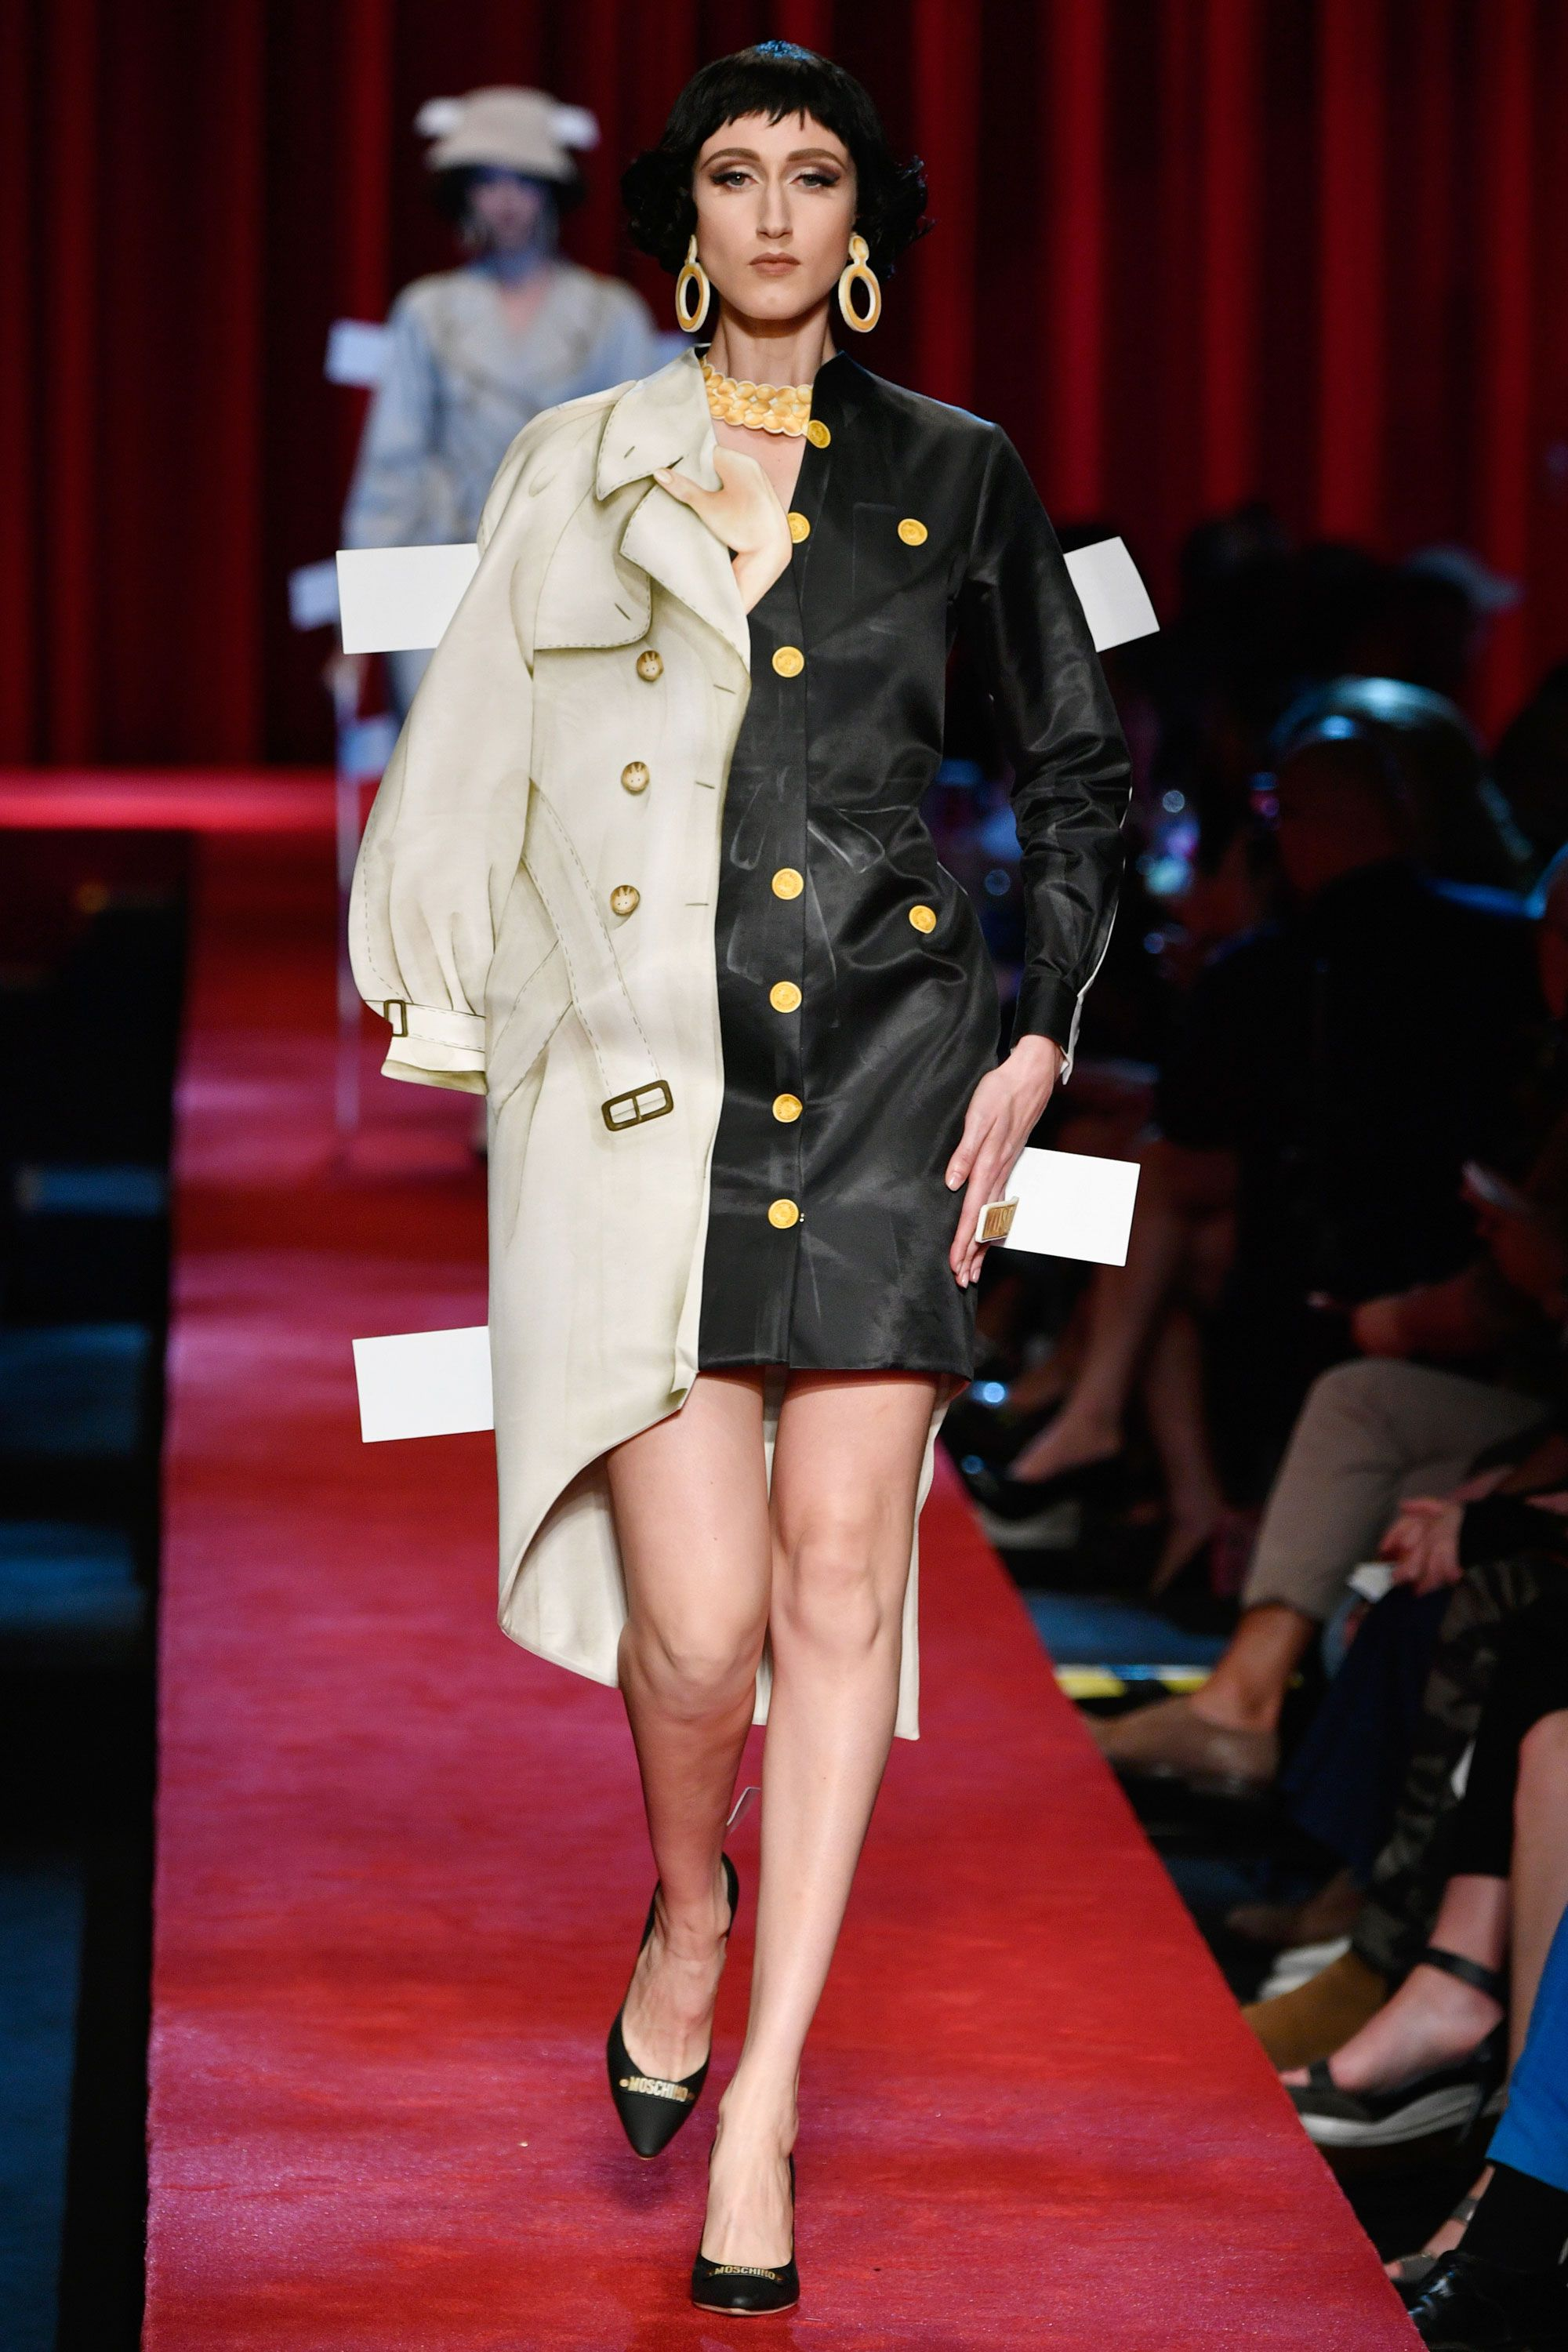 Milan Fashion Week: images from Moschino, Missoni, Versace shows